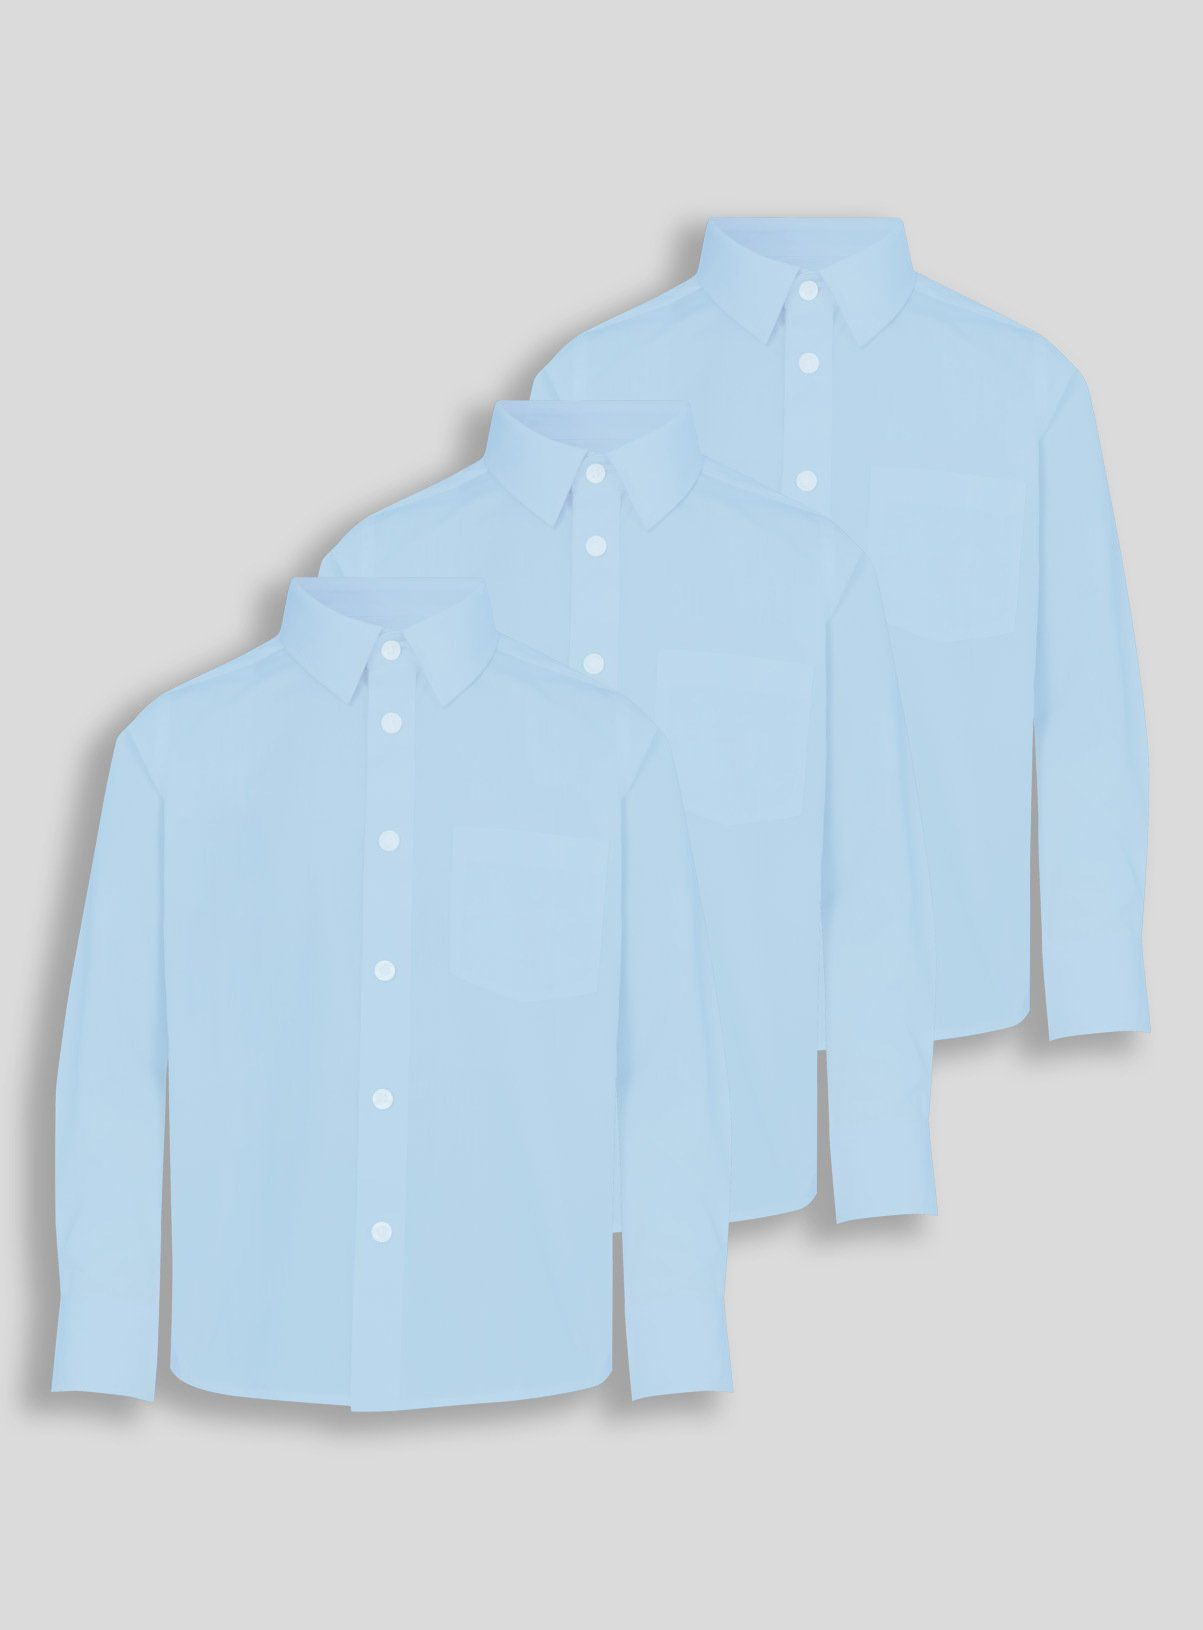 These long-sleeved cotton blend school shirts made from a non iron fabric for fuss-free mornings. With details like a triangle collar and single-breast pocket, this pack of three is classic and essential.Blue long-sleeved shirtsPack of 3Non ironElasticated cuff age 3-5 for easy dressingSingle chest pocketKeep away from fire